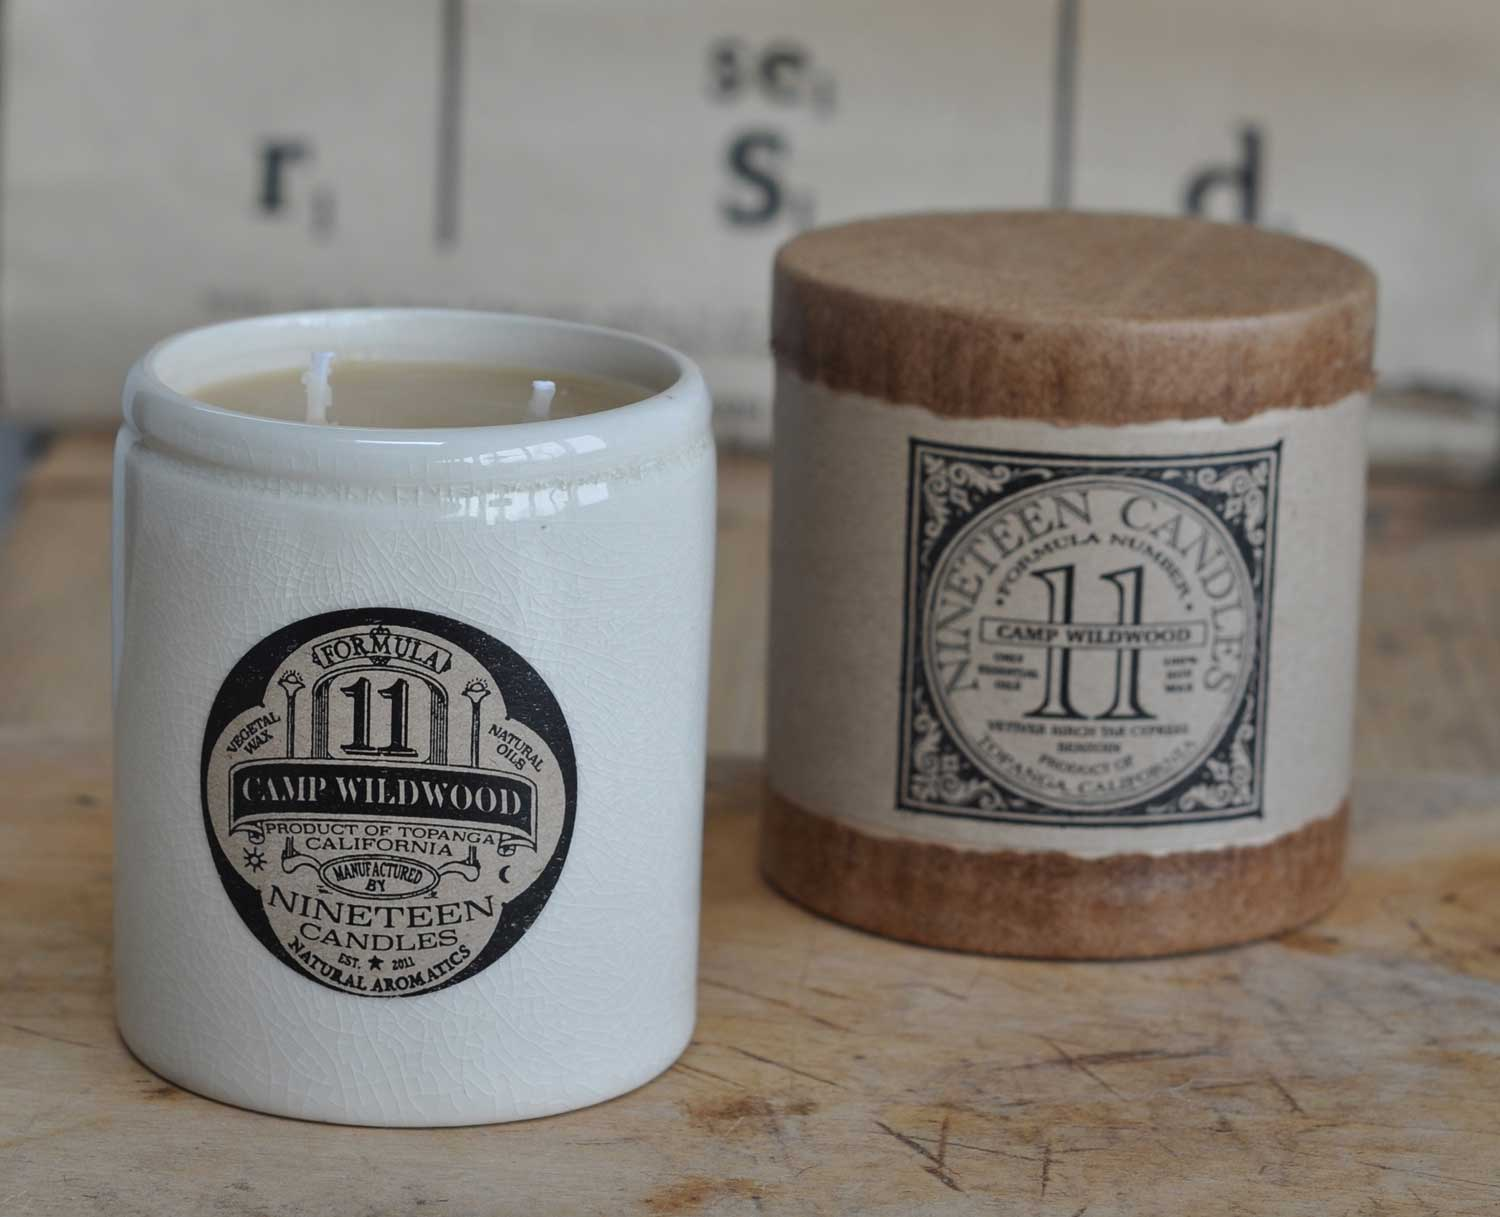 Handmade Nineteen Candle No 11 Camp Wildwood